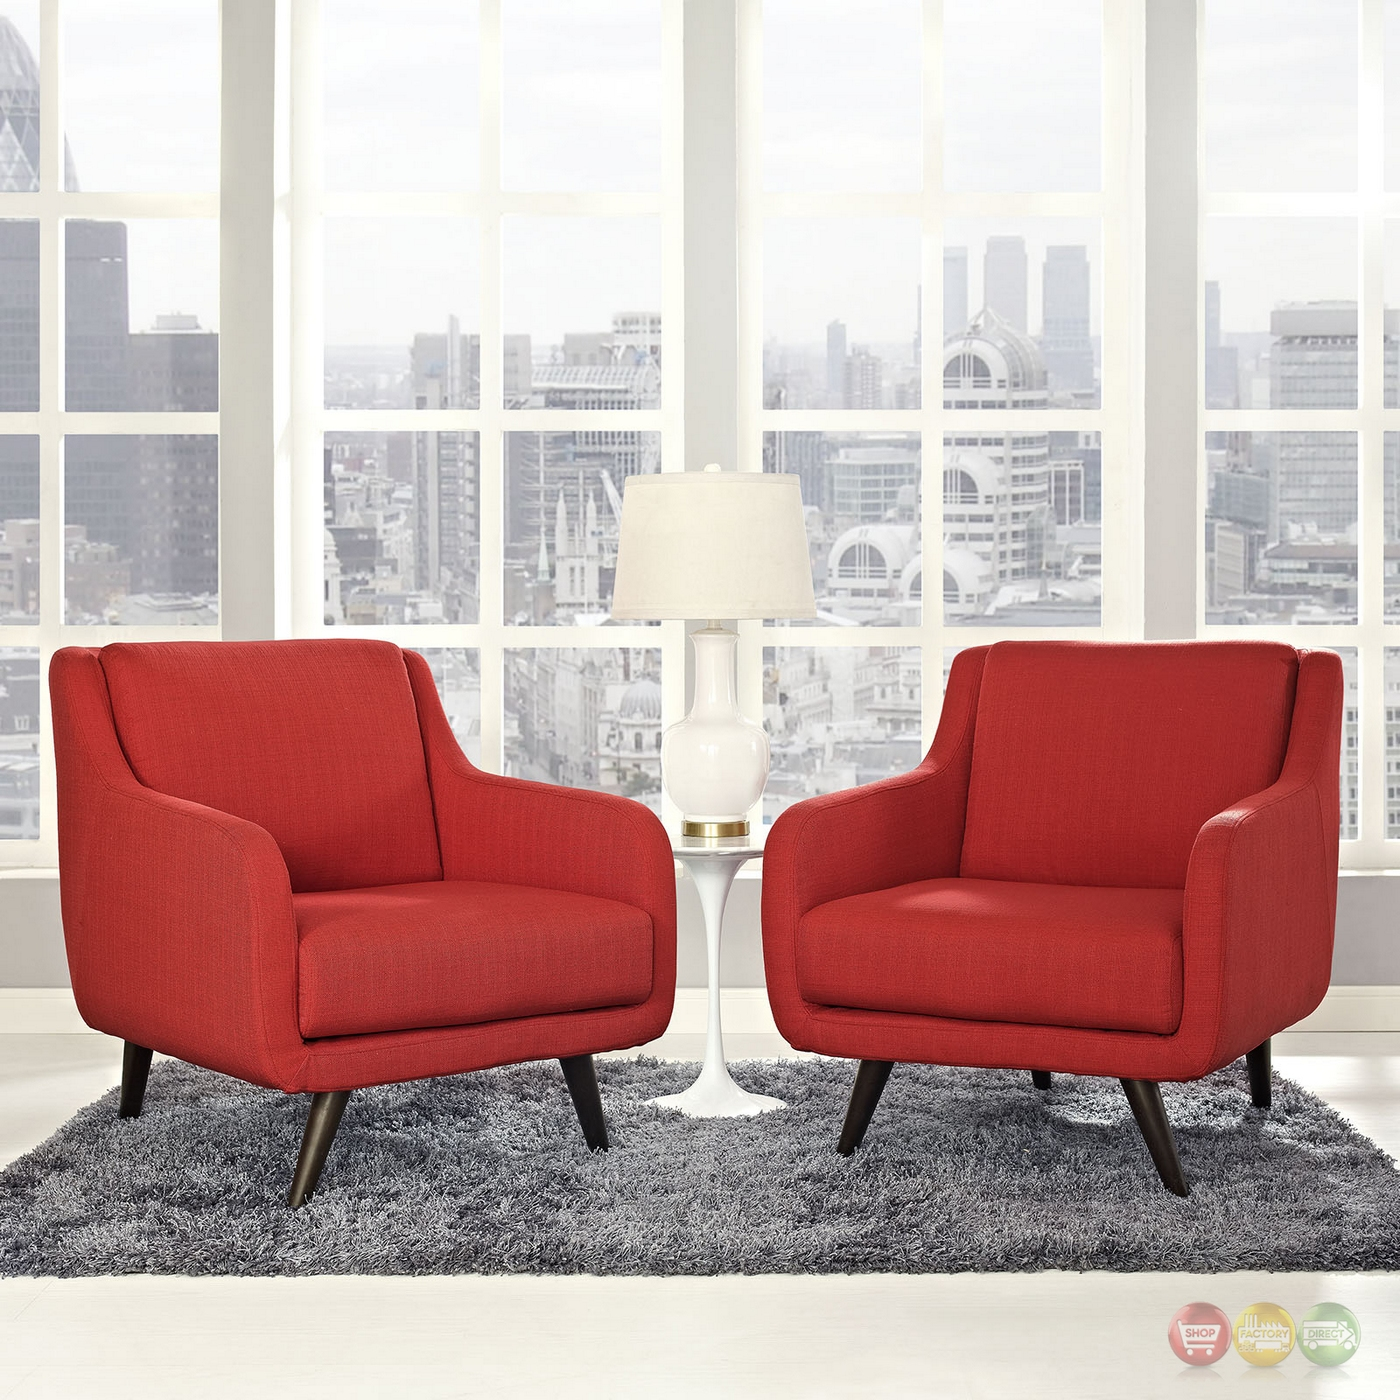 Set of 2 verve mid century modern upholstered armchairs w for Mid century modern armchairs